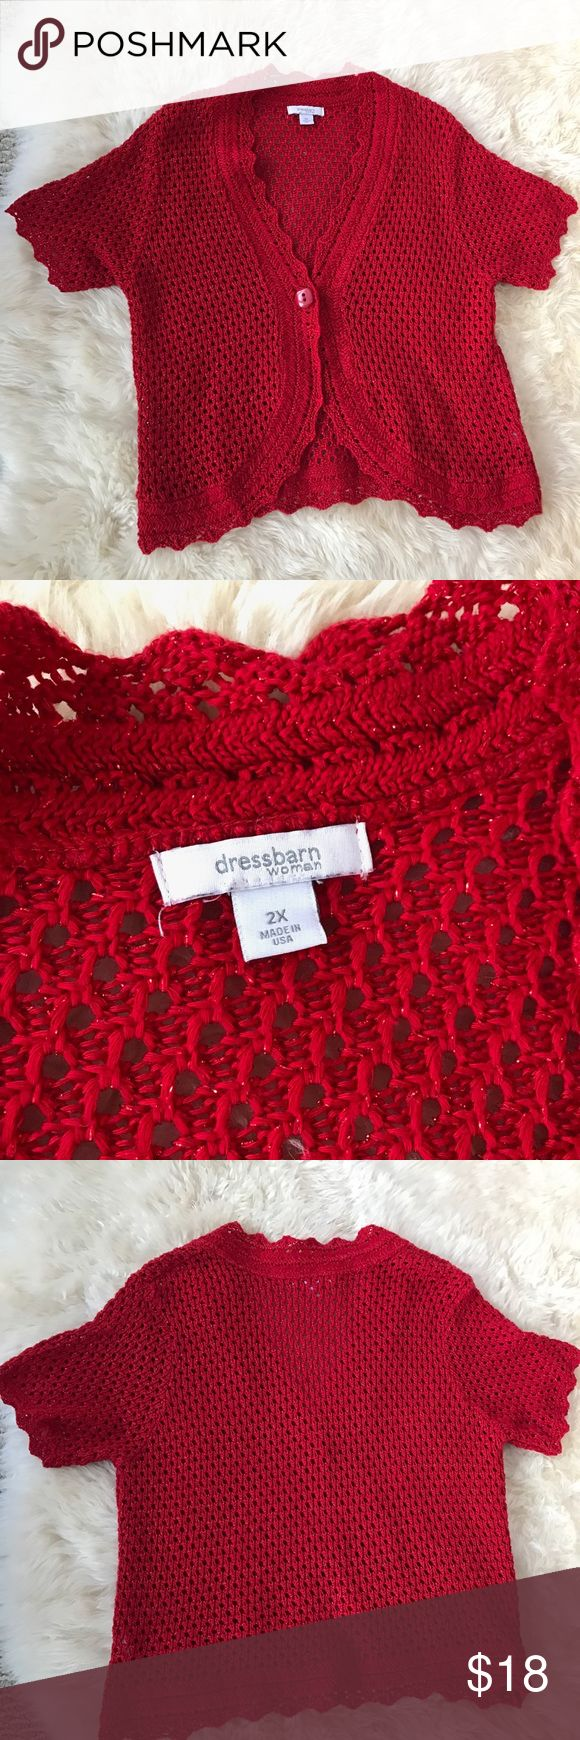 Dressbarn Short Sleeve Cardigan Cute red metallic cardigan with short sleeves and one button closure. Excellent condition! Dress Barn Sweaters Cardigans